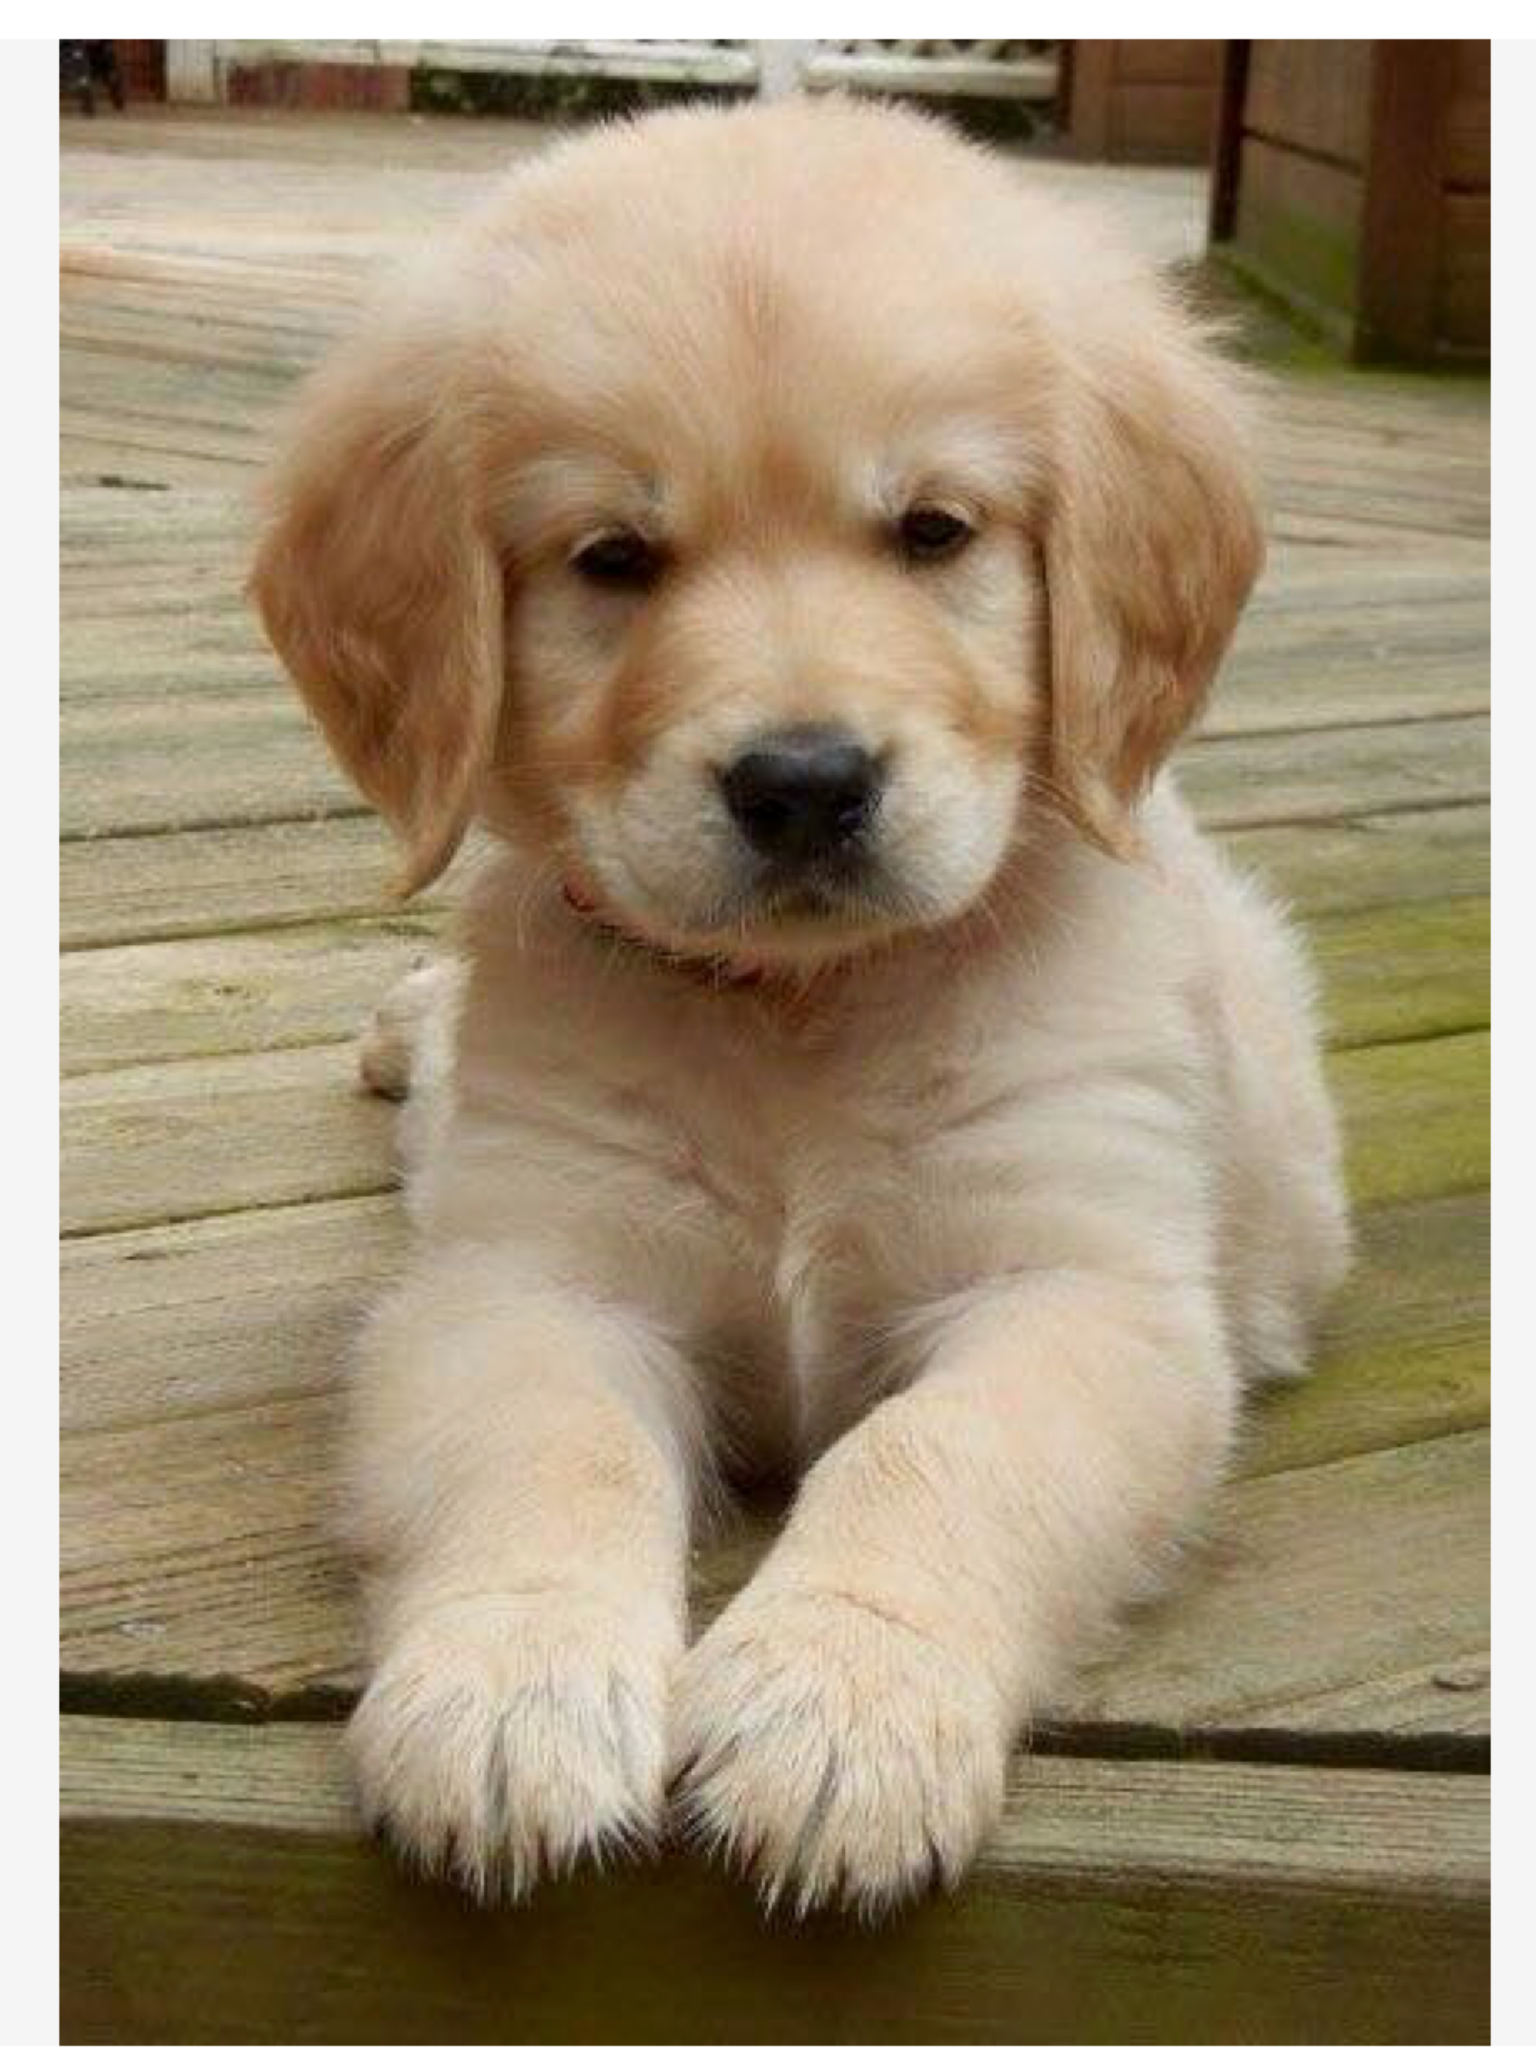 Pin By Jill Zipperer On Dogs Animals Cute Baby Animals Baby Animals Cute Dogs